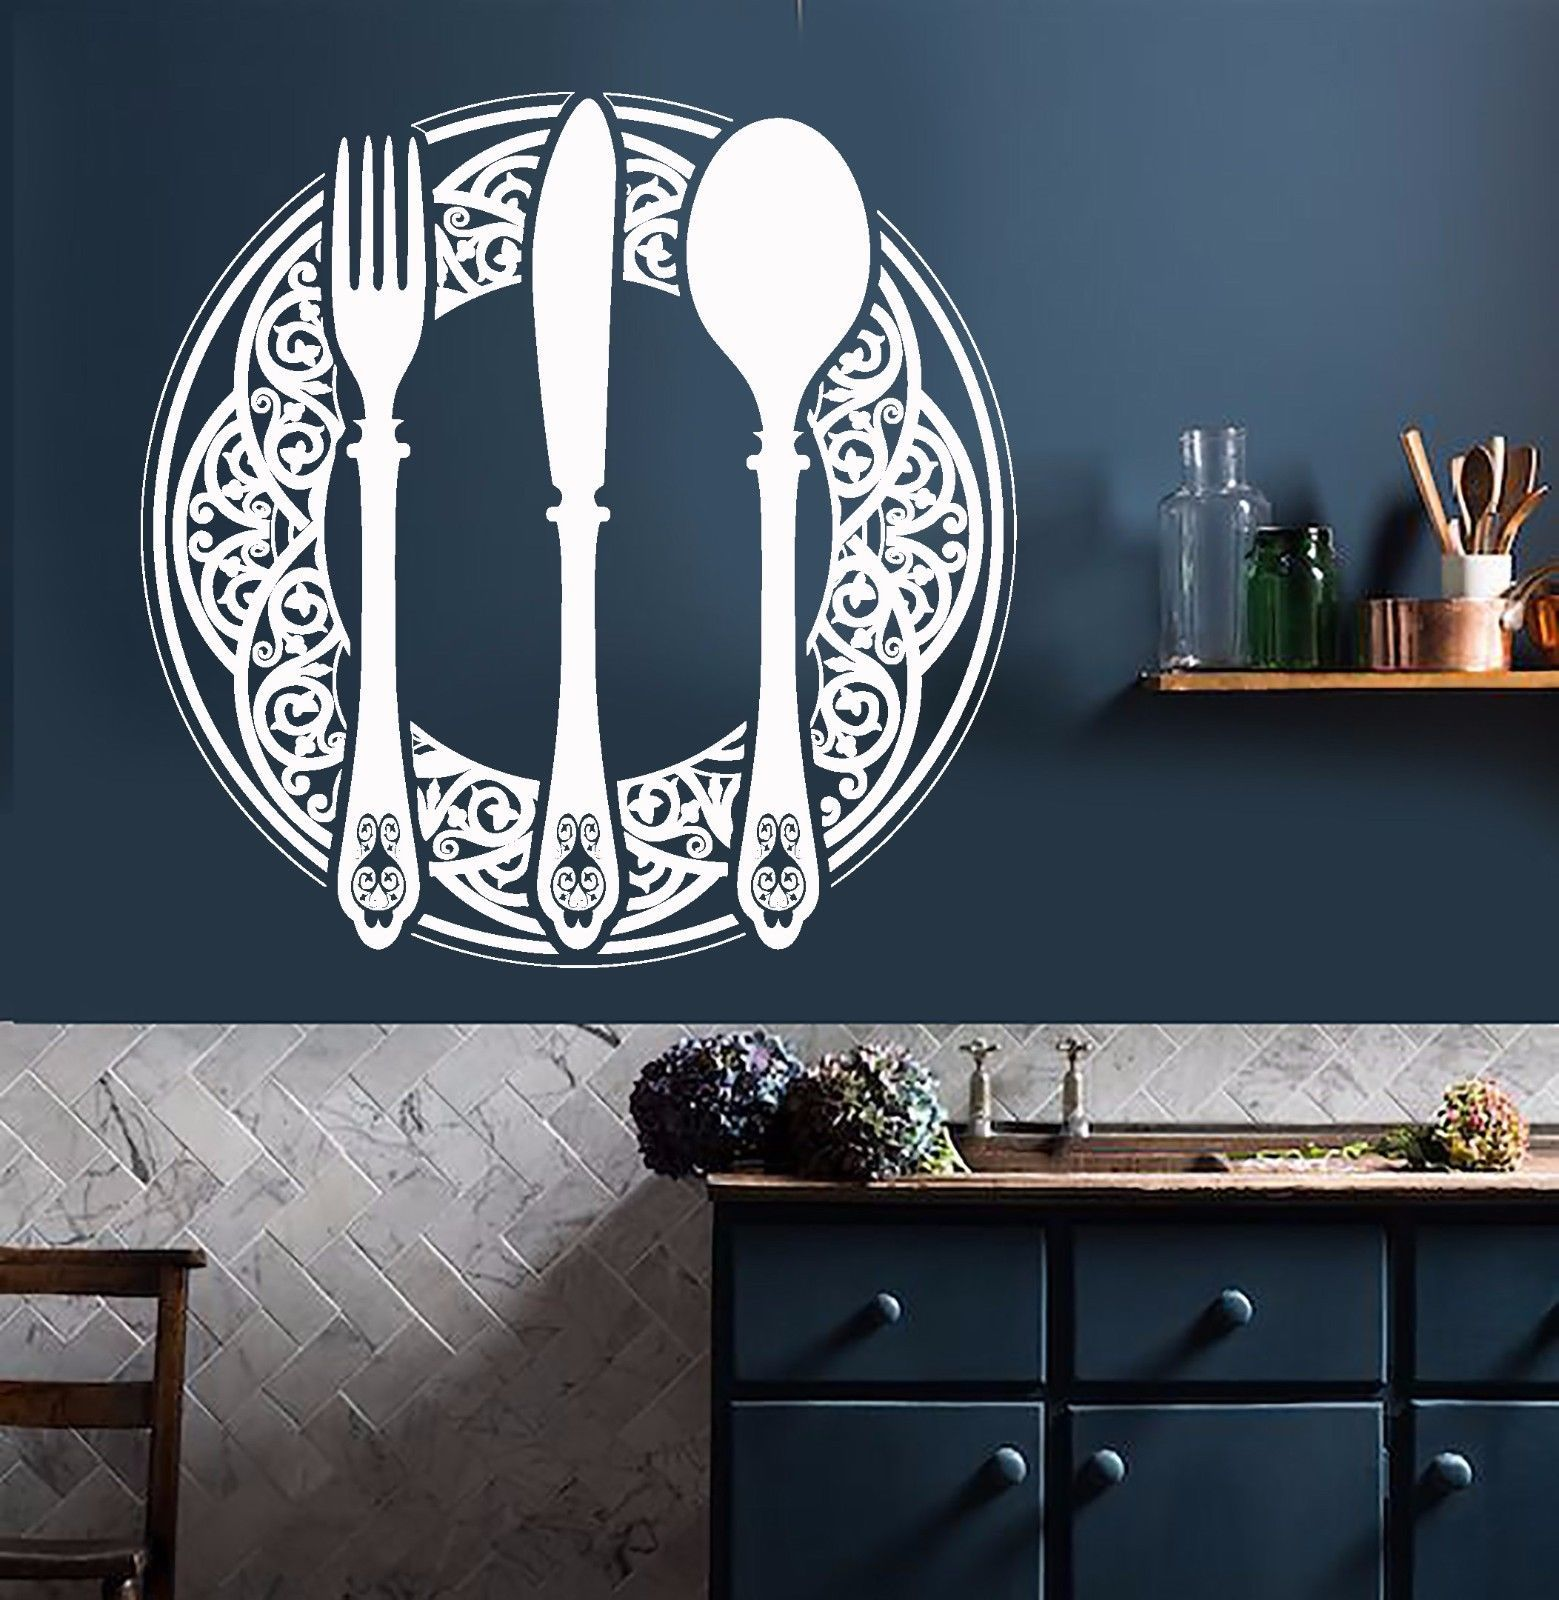 Details about Vinyl Wall Decal Dining Room Decoration ...